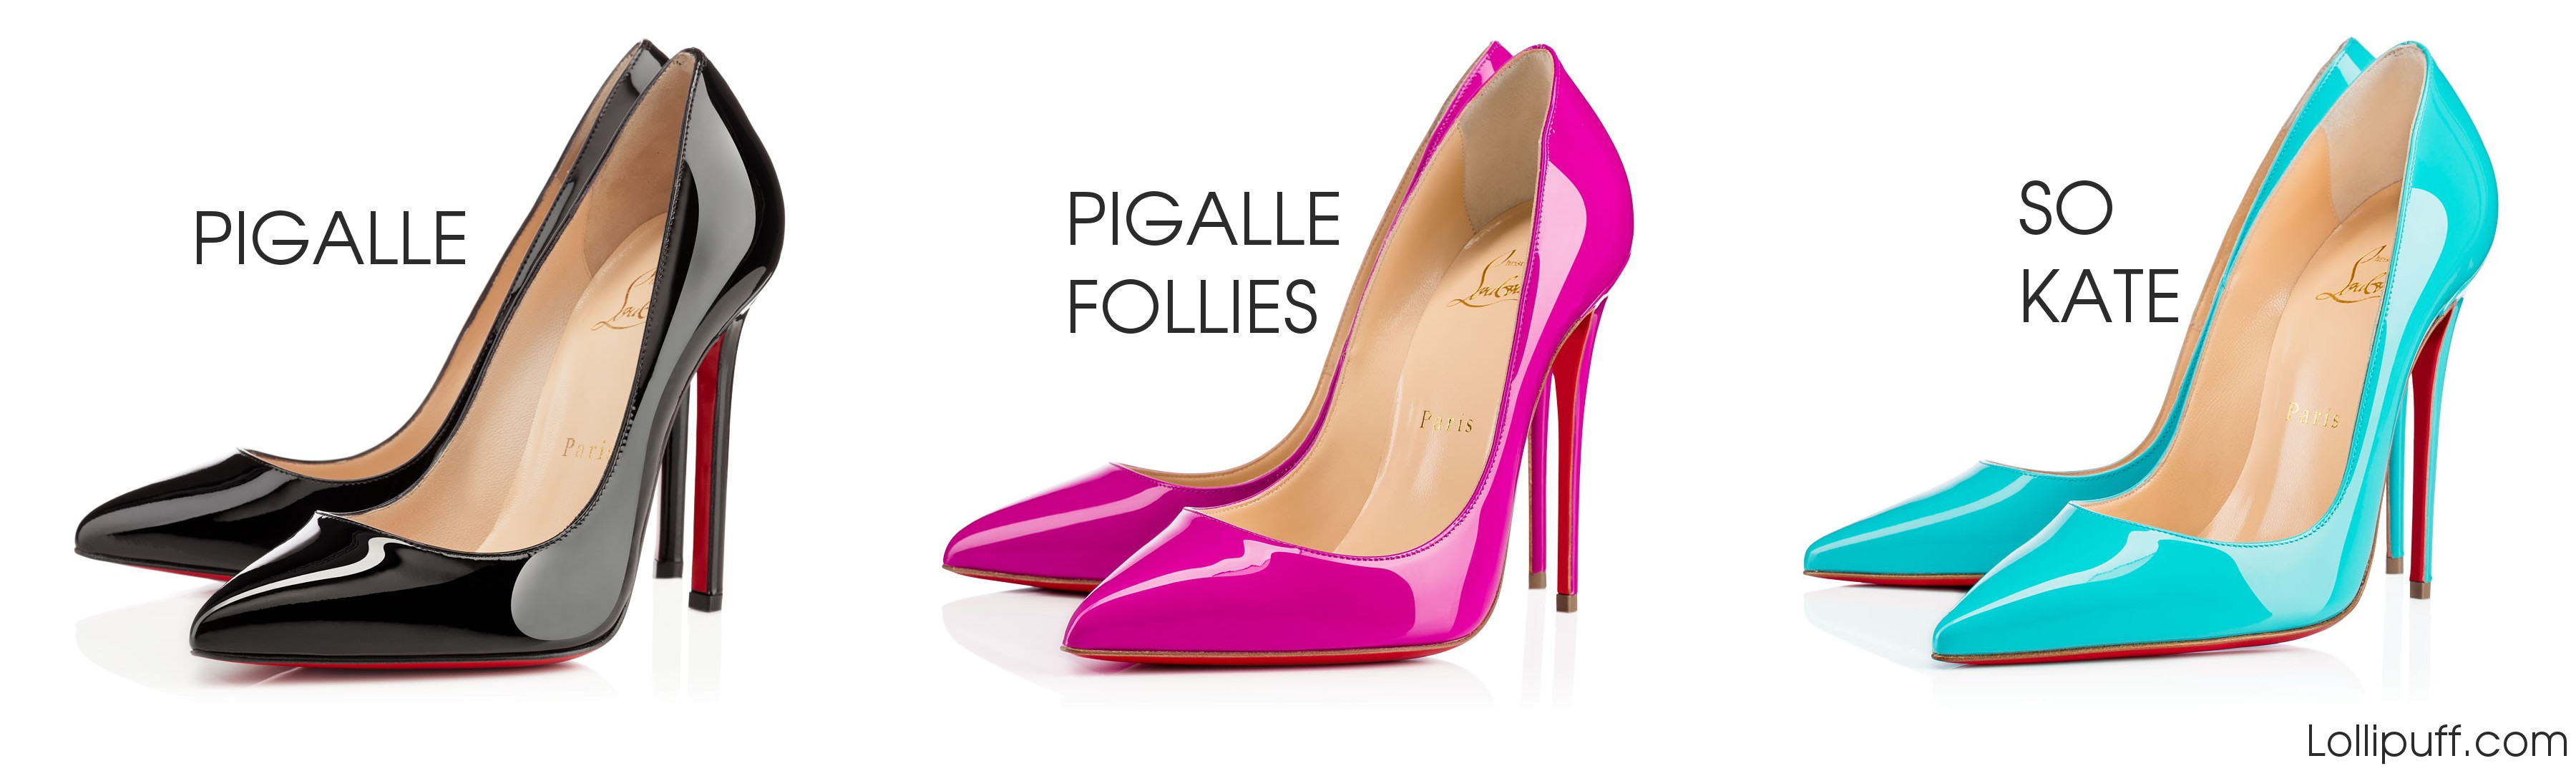 first rate 77259 be685 Christian Louboutin Pigalle vs Pigalle Follies vs So Kate ...